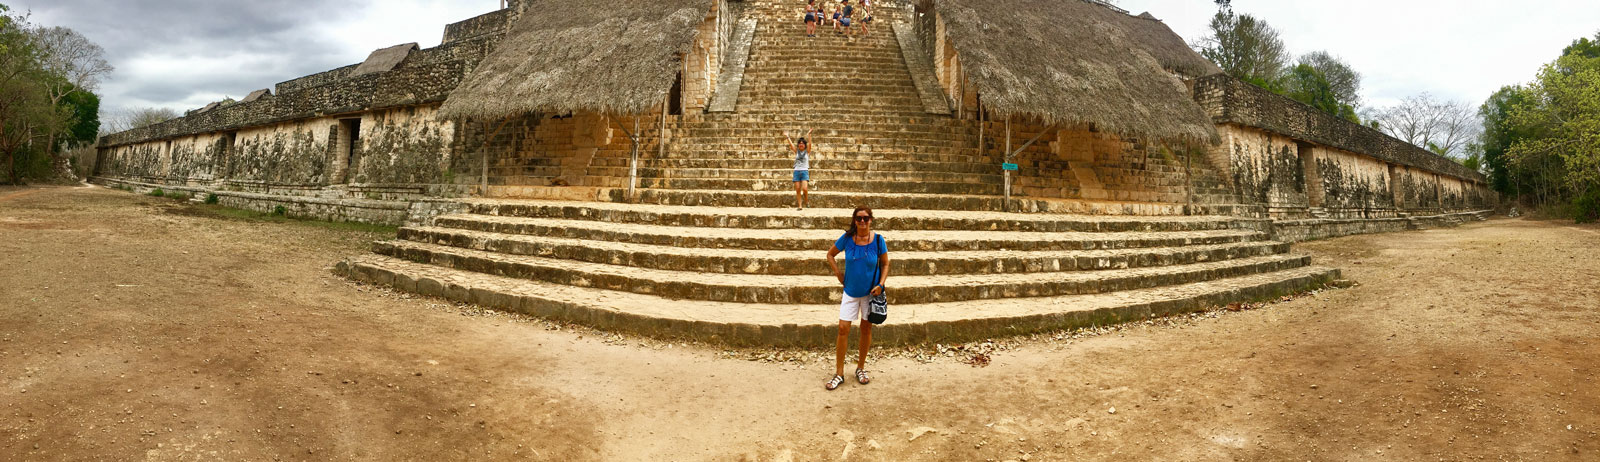 Hammocks_and_Ruins_Blog_Riviera_Maya_Mexico_Travel_Discover_Explore_Yucatan_Pyramid_Temple_Ek_Balam_12.jpg